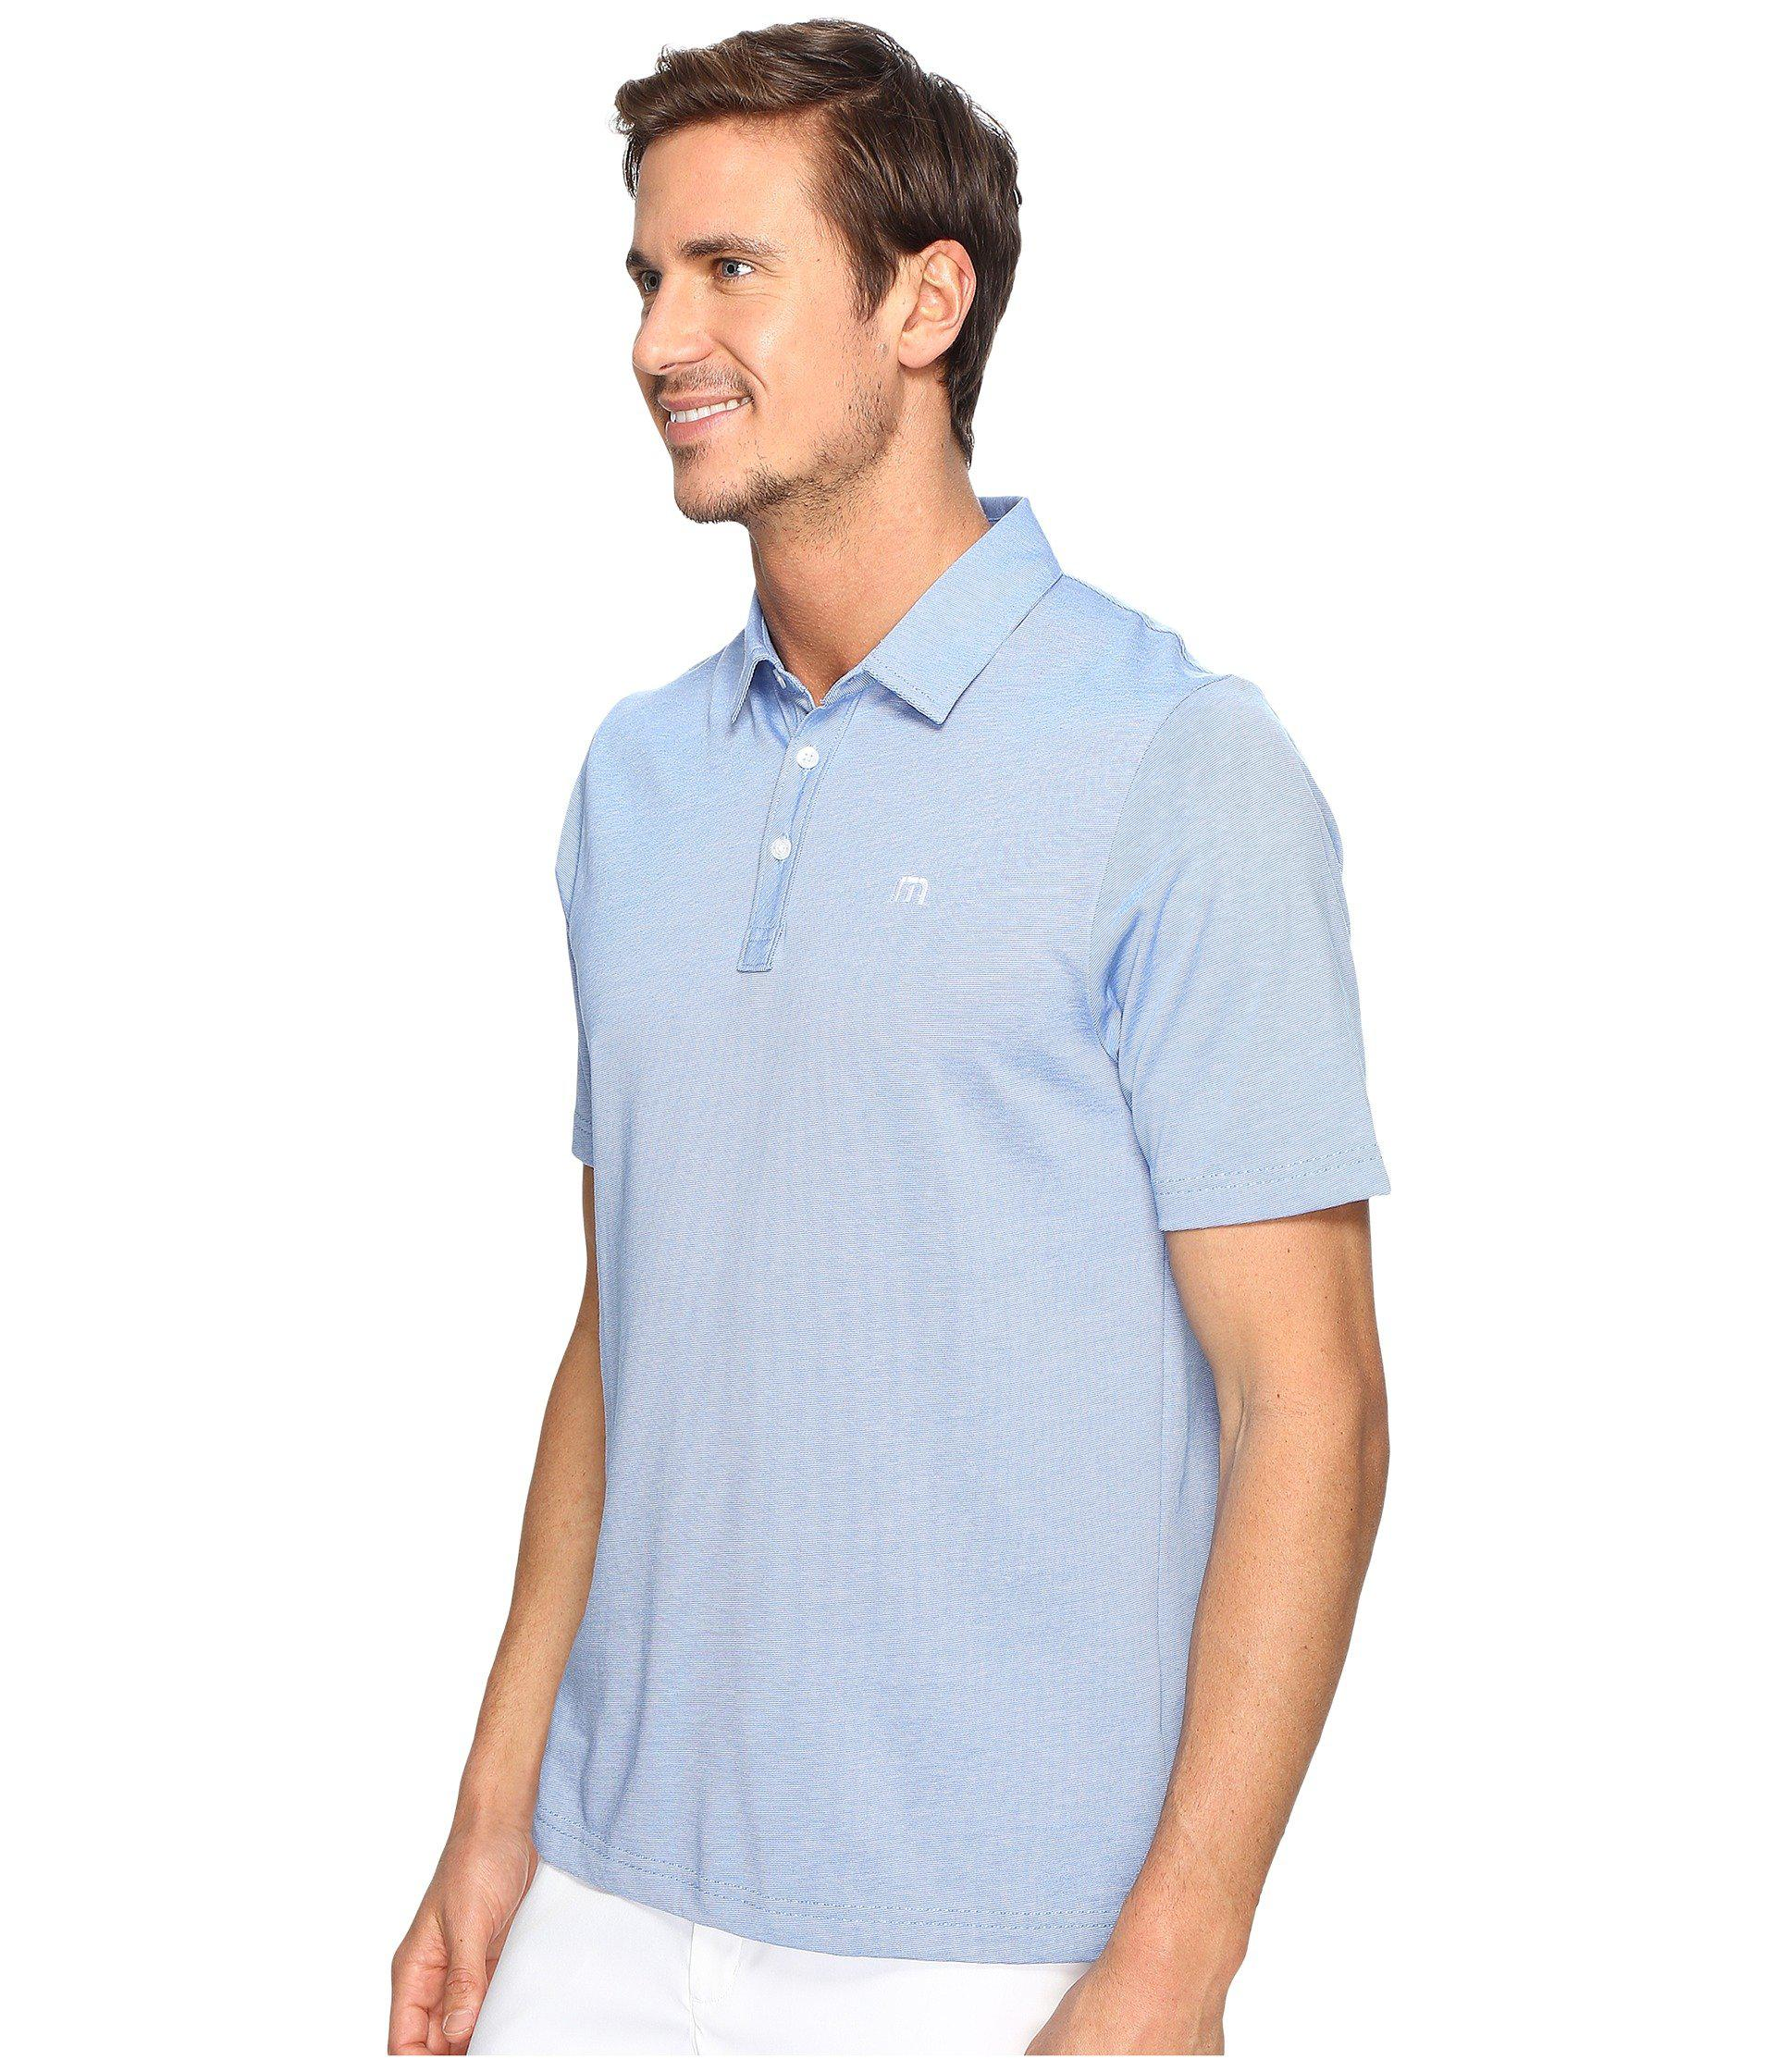 53d990ad Travis Mathew The Zinna Polo (black) Men's Clothing in Blue for Men - Lyst